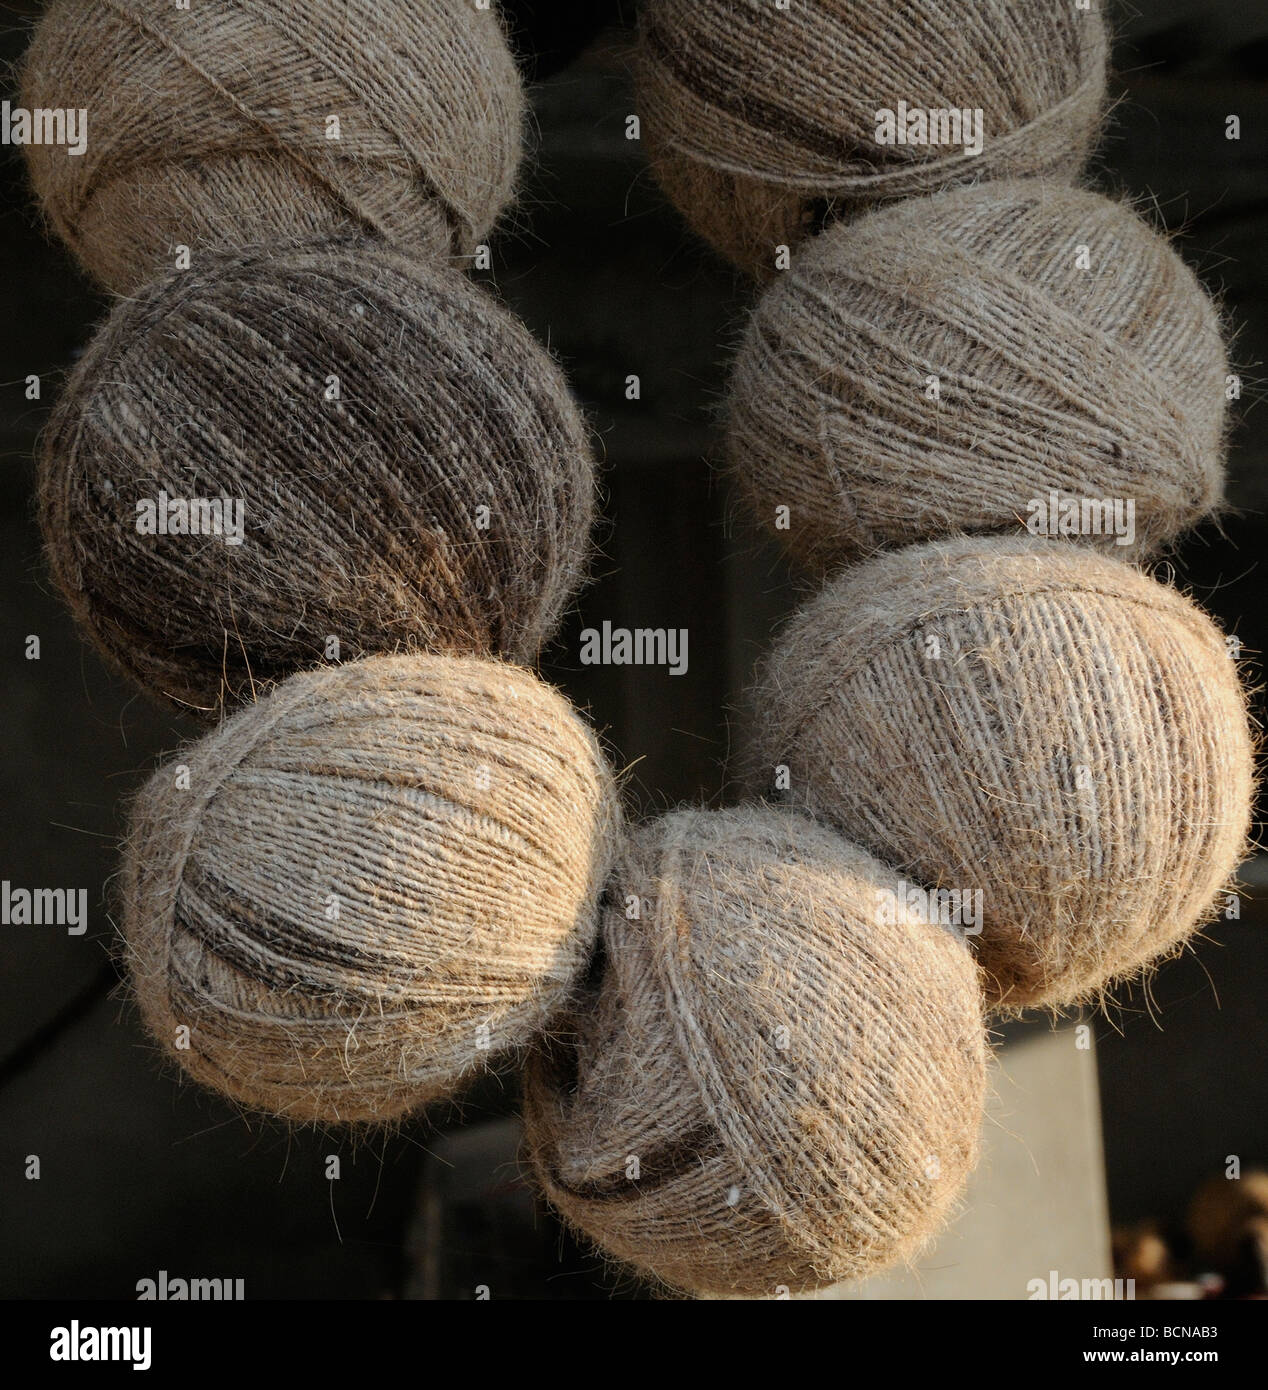 Balls of undyed naturally coloured wool hang in a village house. Nimaj, Rajasthan, Republic of India. Stock Photo